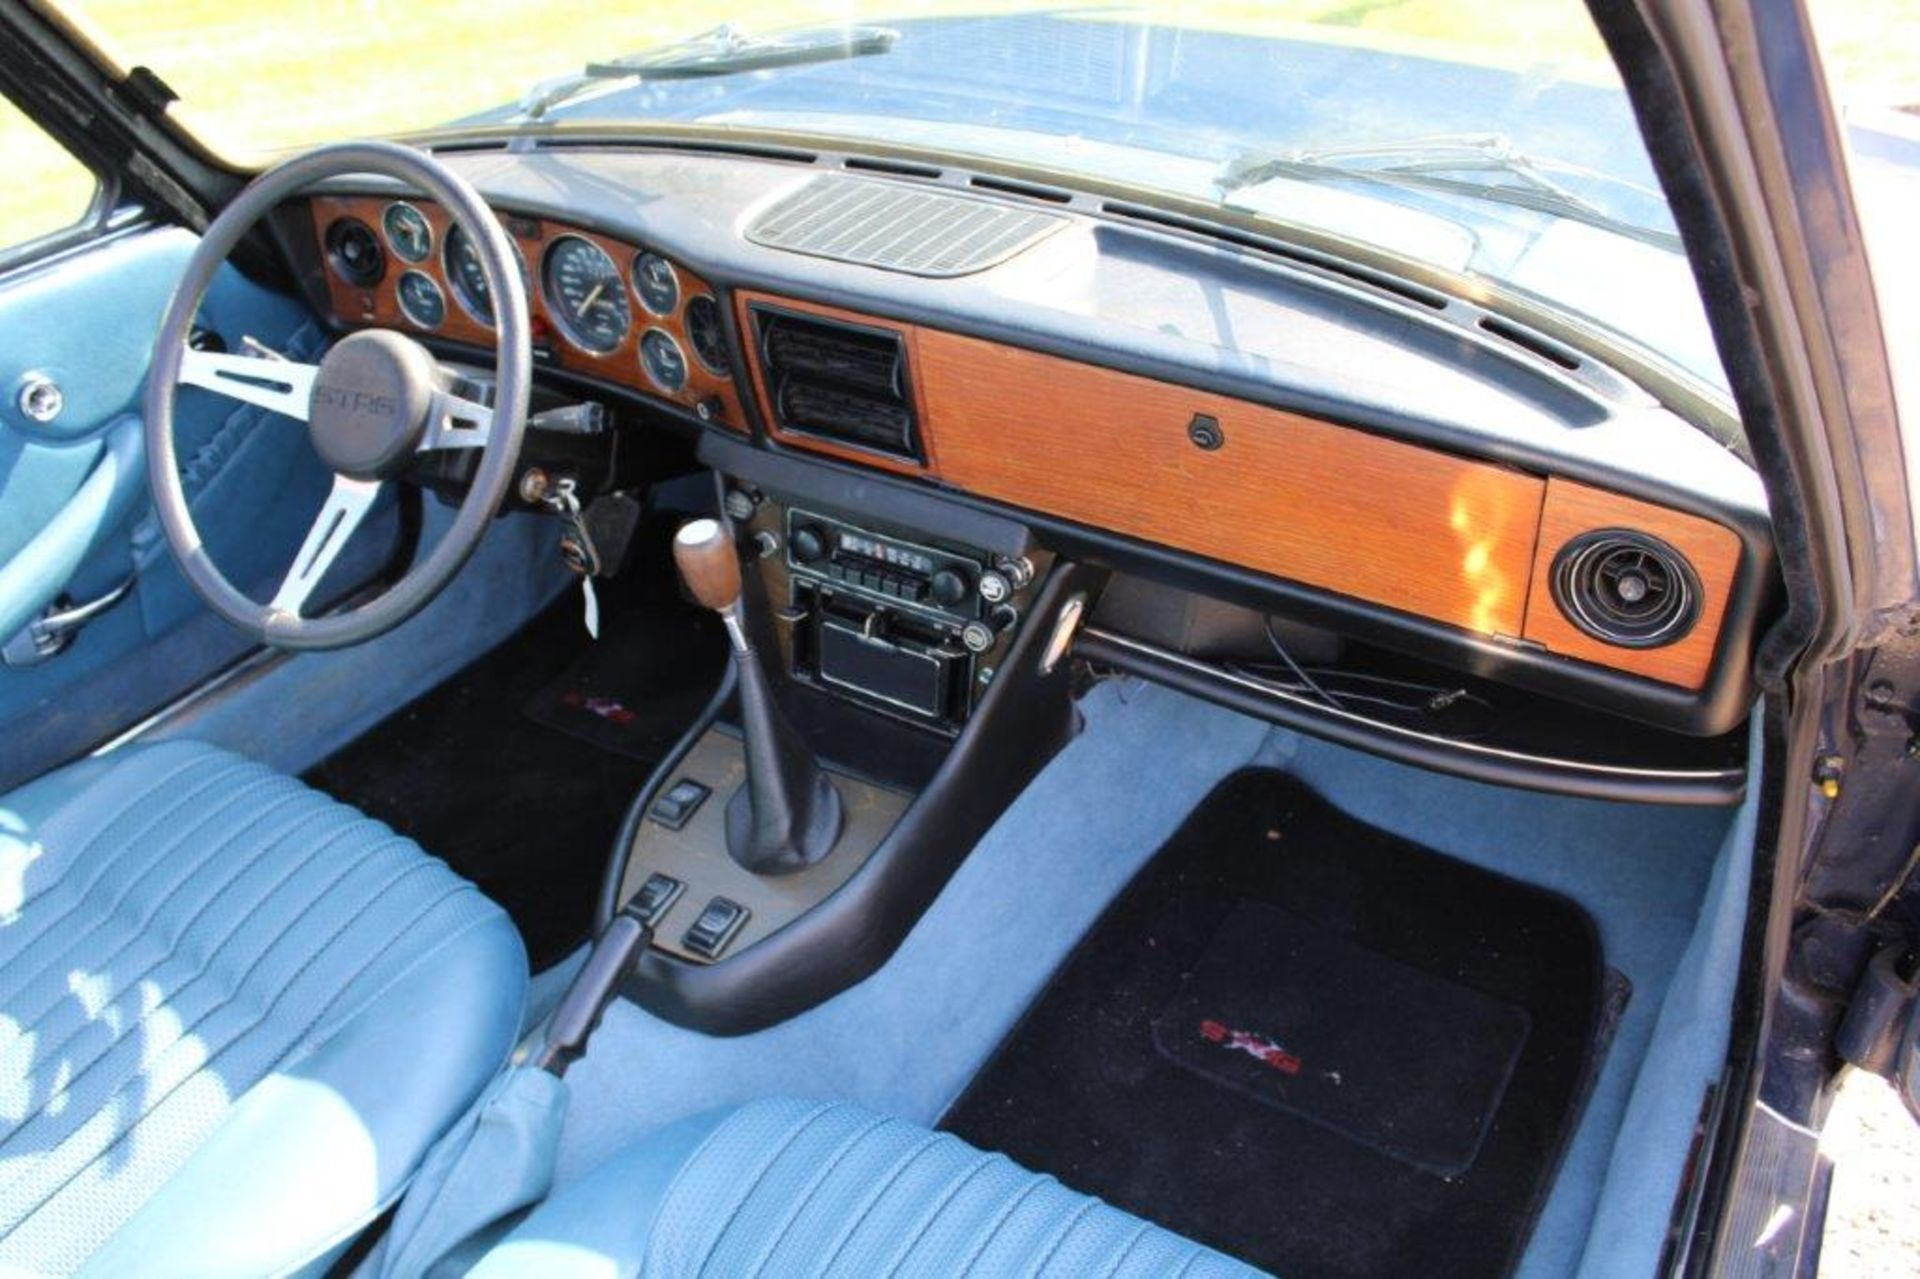 1973 Triumph Stag 3.0 LHD - Image 14 of 28